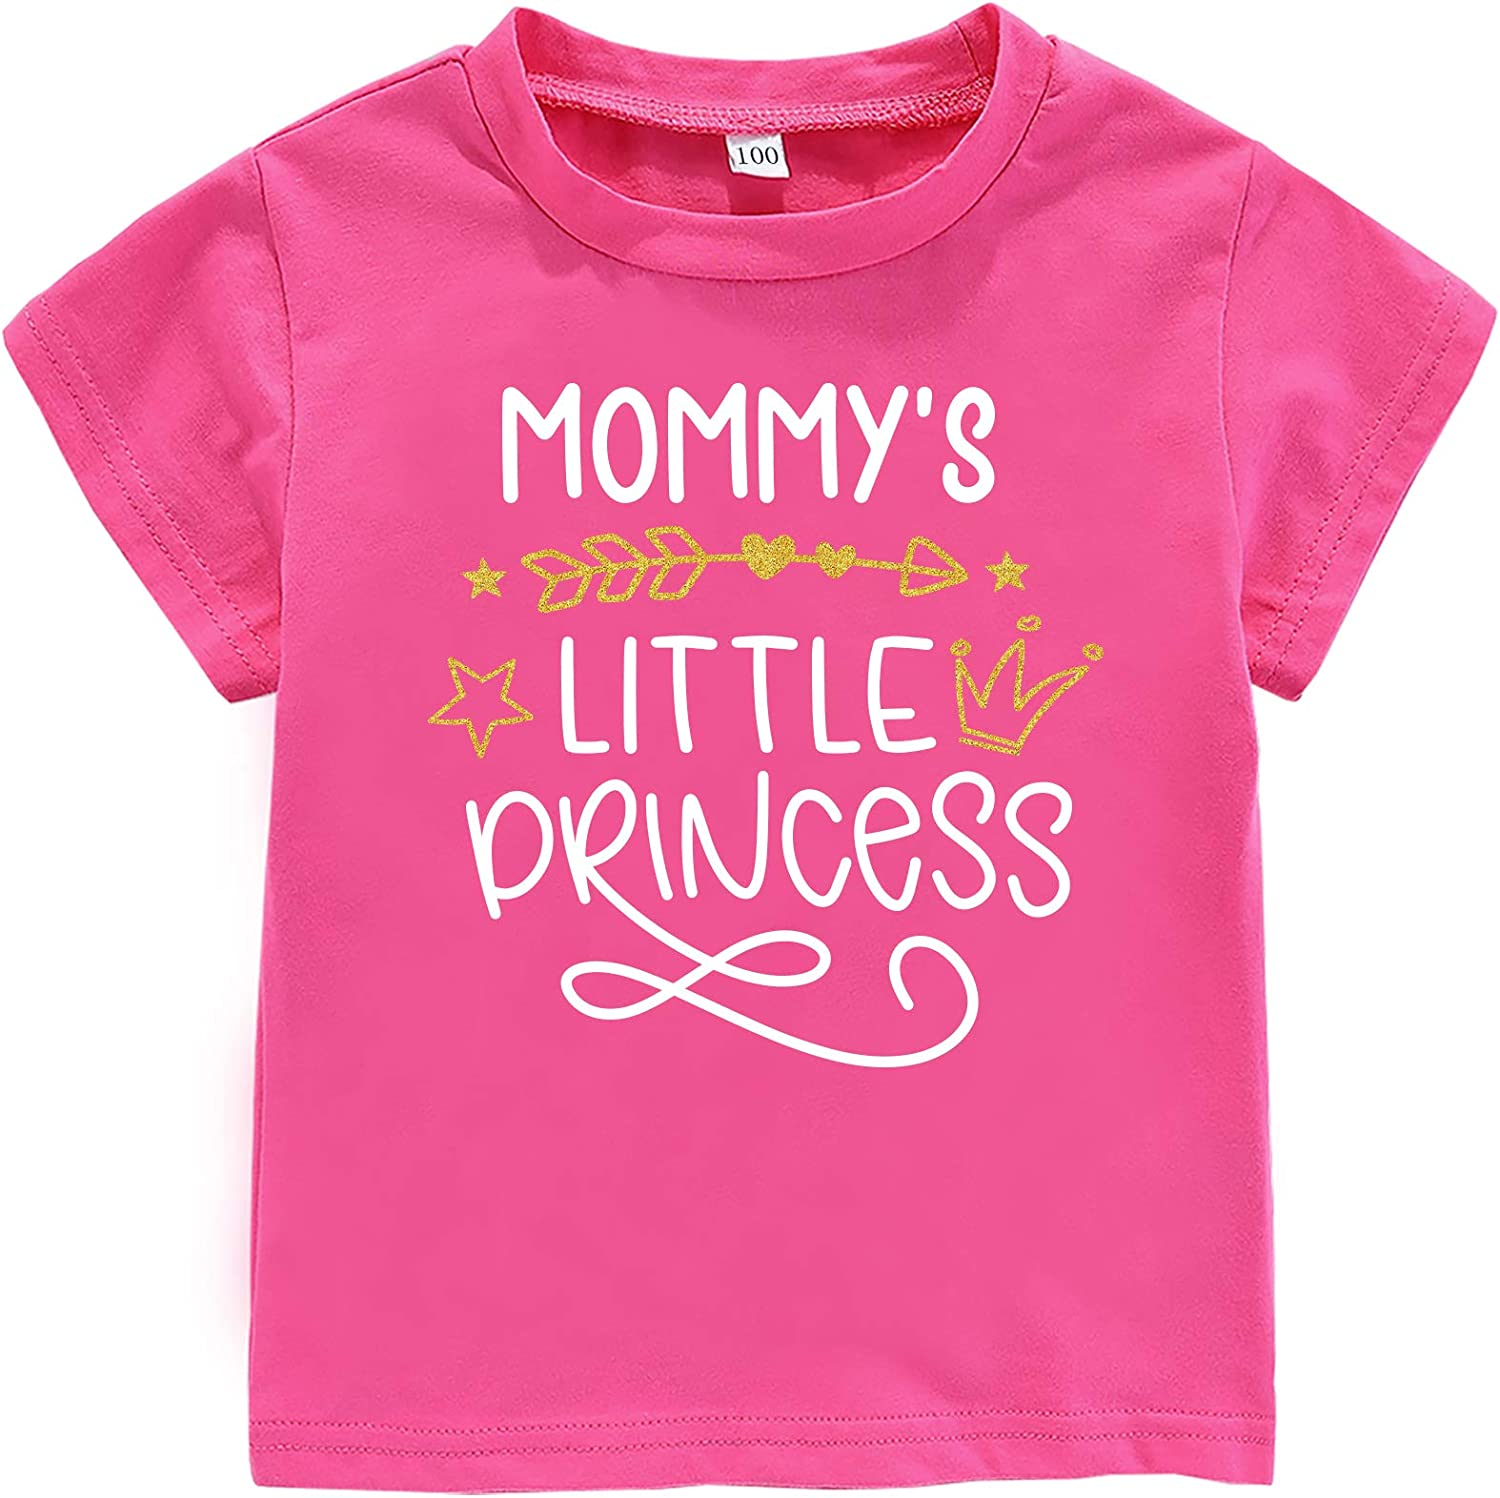 My Heart Belongs to Mommy Toddler Baby Boys Girls Short Sleeve Top Kids Mother's Day Outfit